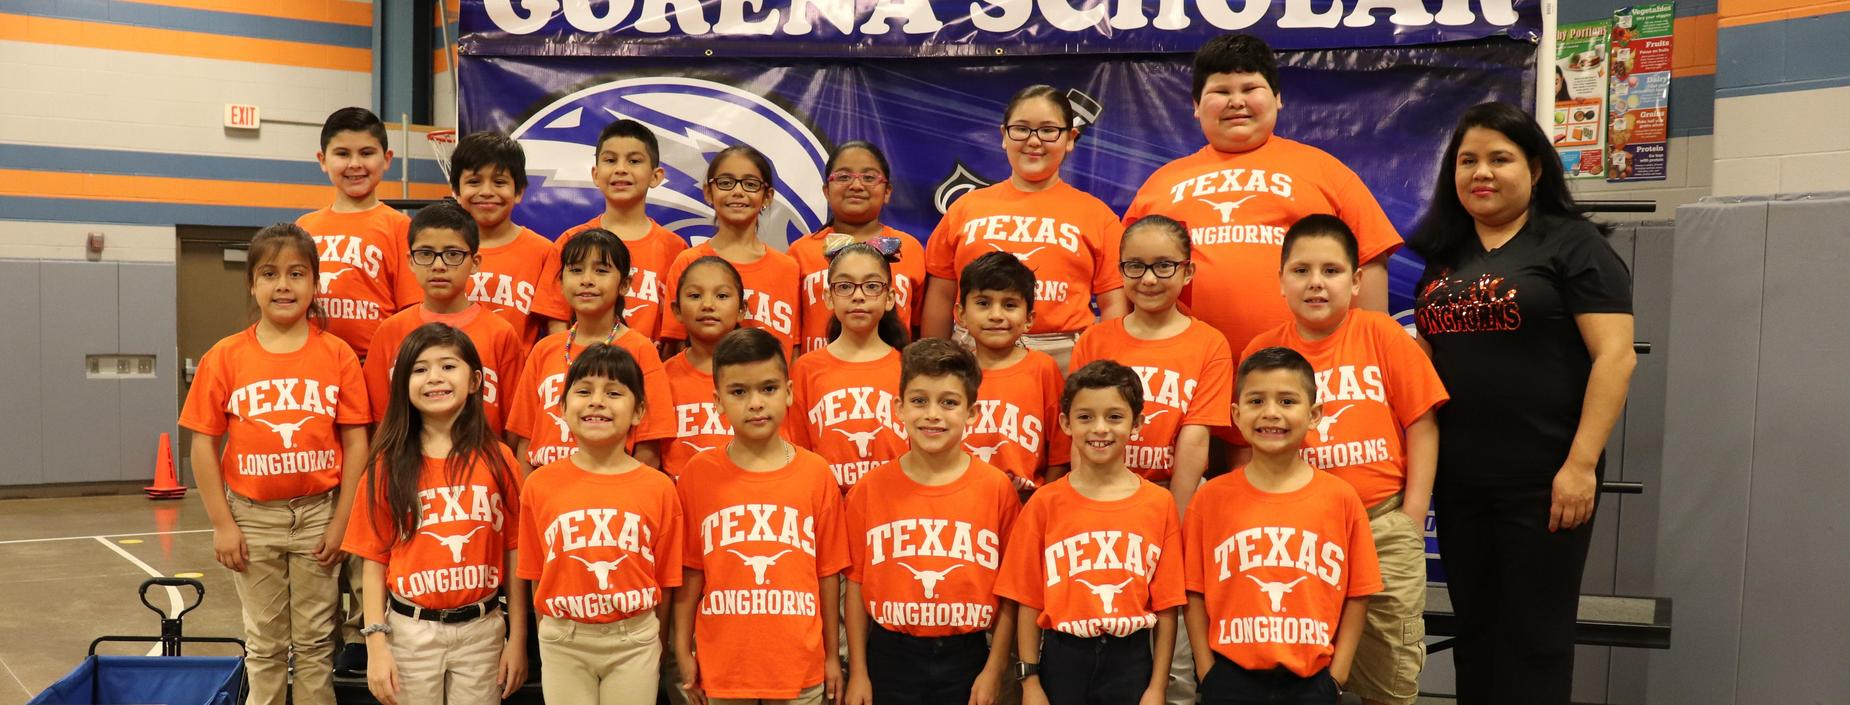 picture of Ms. Trevino's class